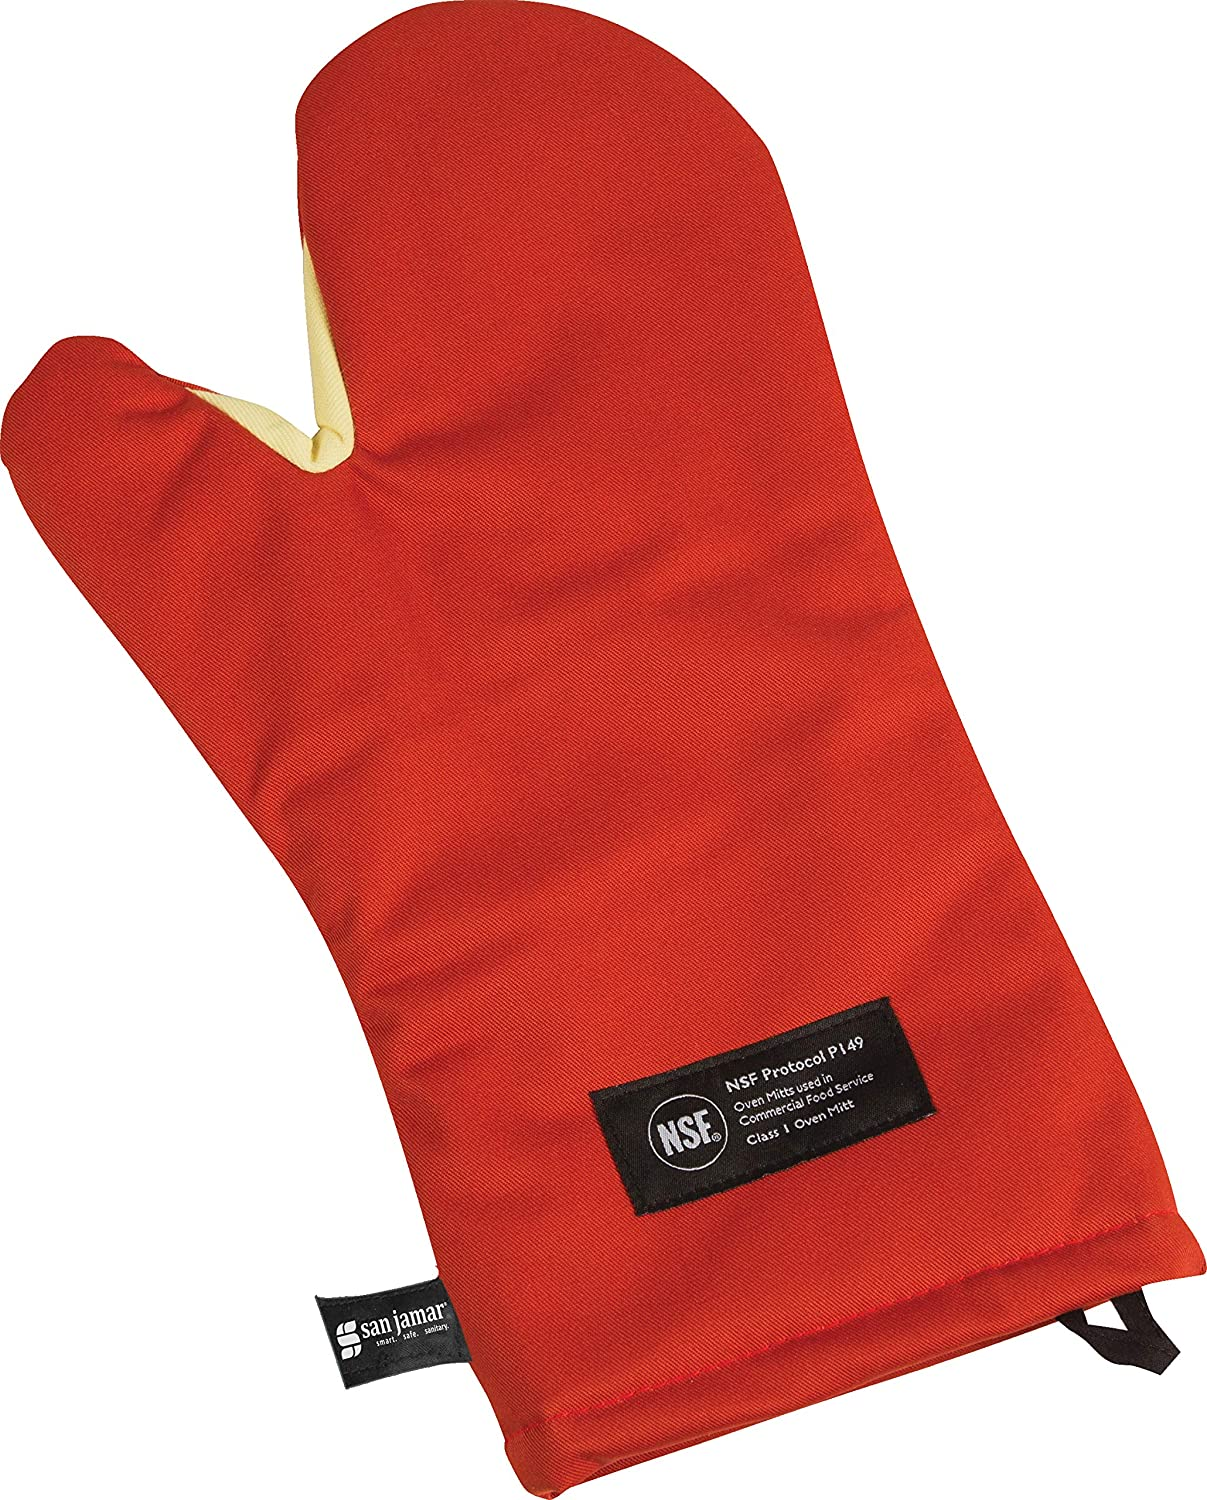 "San Jamar CTC17 Cool Touch Conventional Oven Mitt Heat Protection up to 500° F, 17"" Length, Red"